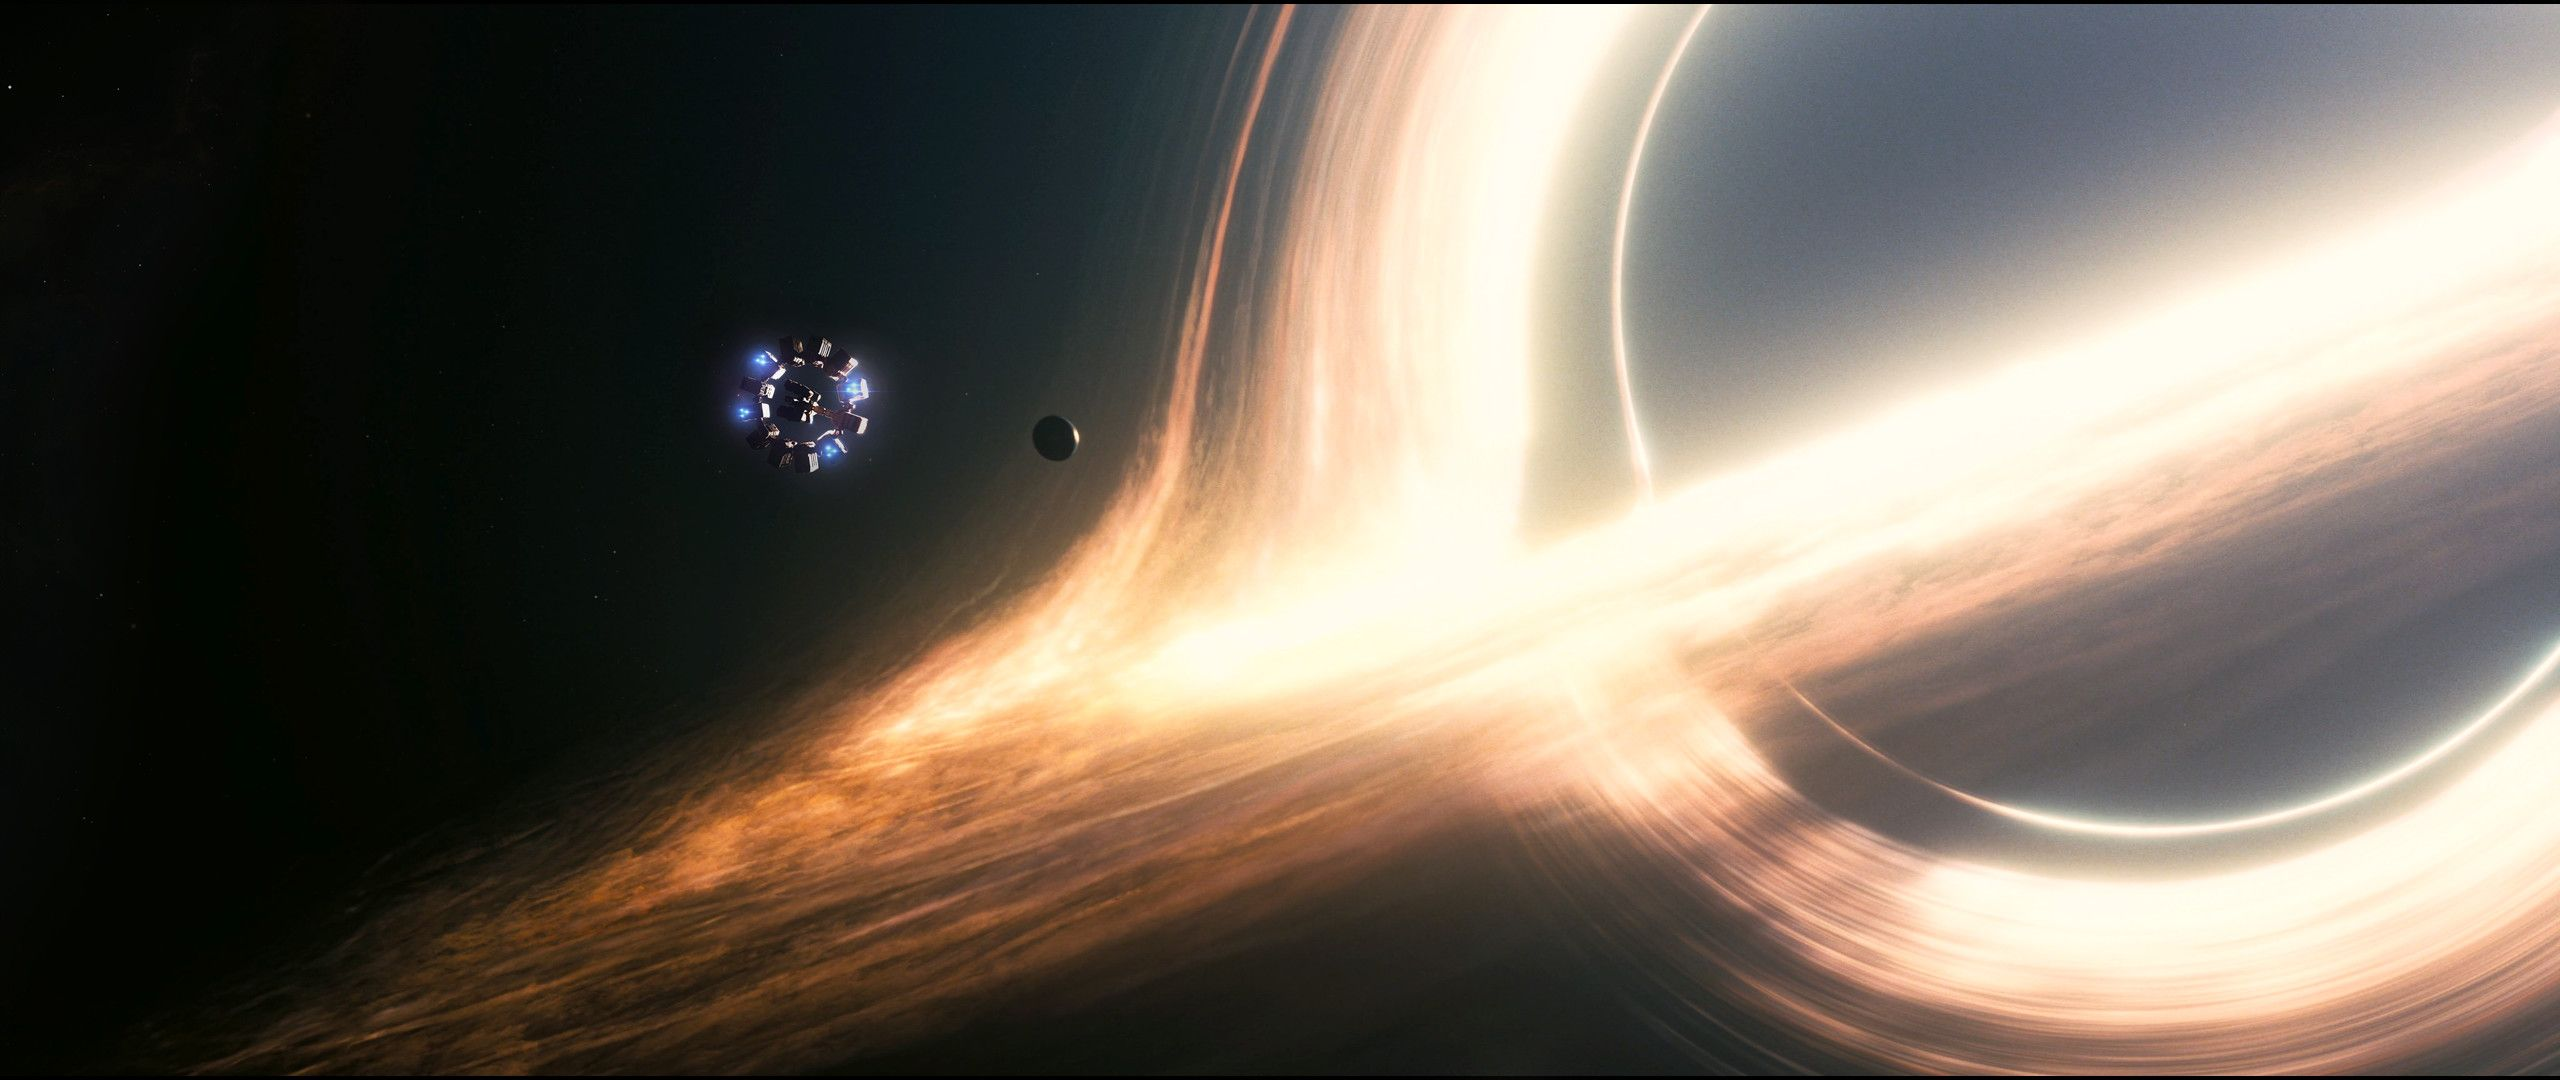 Interstellar Black Hole Wallpapers Top Free Interstellar